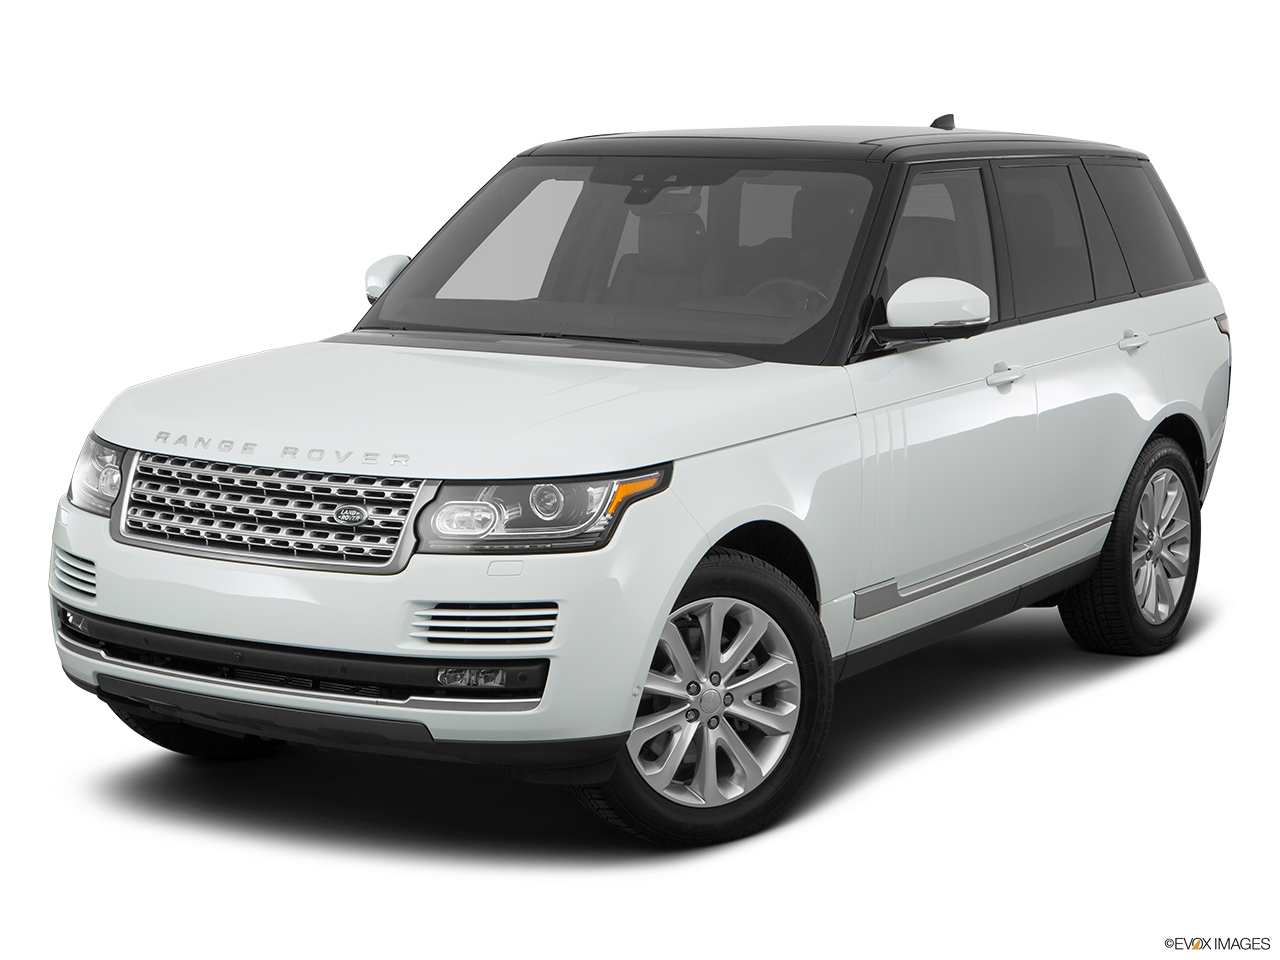 2017 Land Rover Range Rover Prices In Qatar Gulf Specs Amp Reviews For Doha Yallamotor